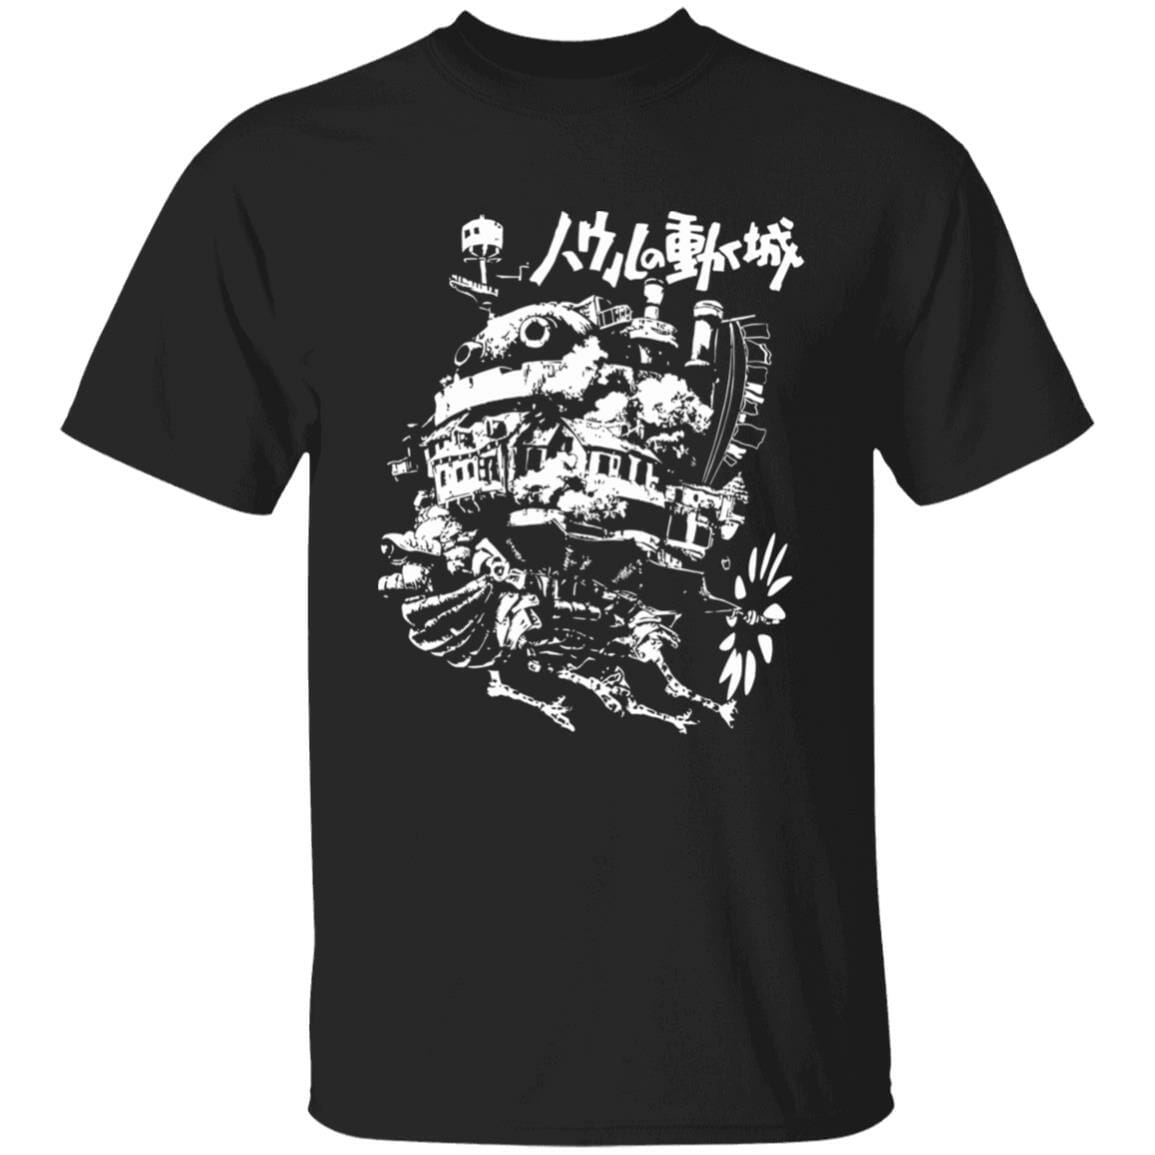 Howl's Castle in Black and White T Shirt